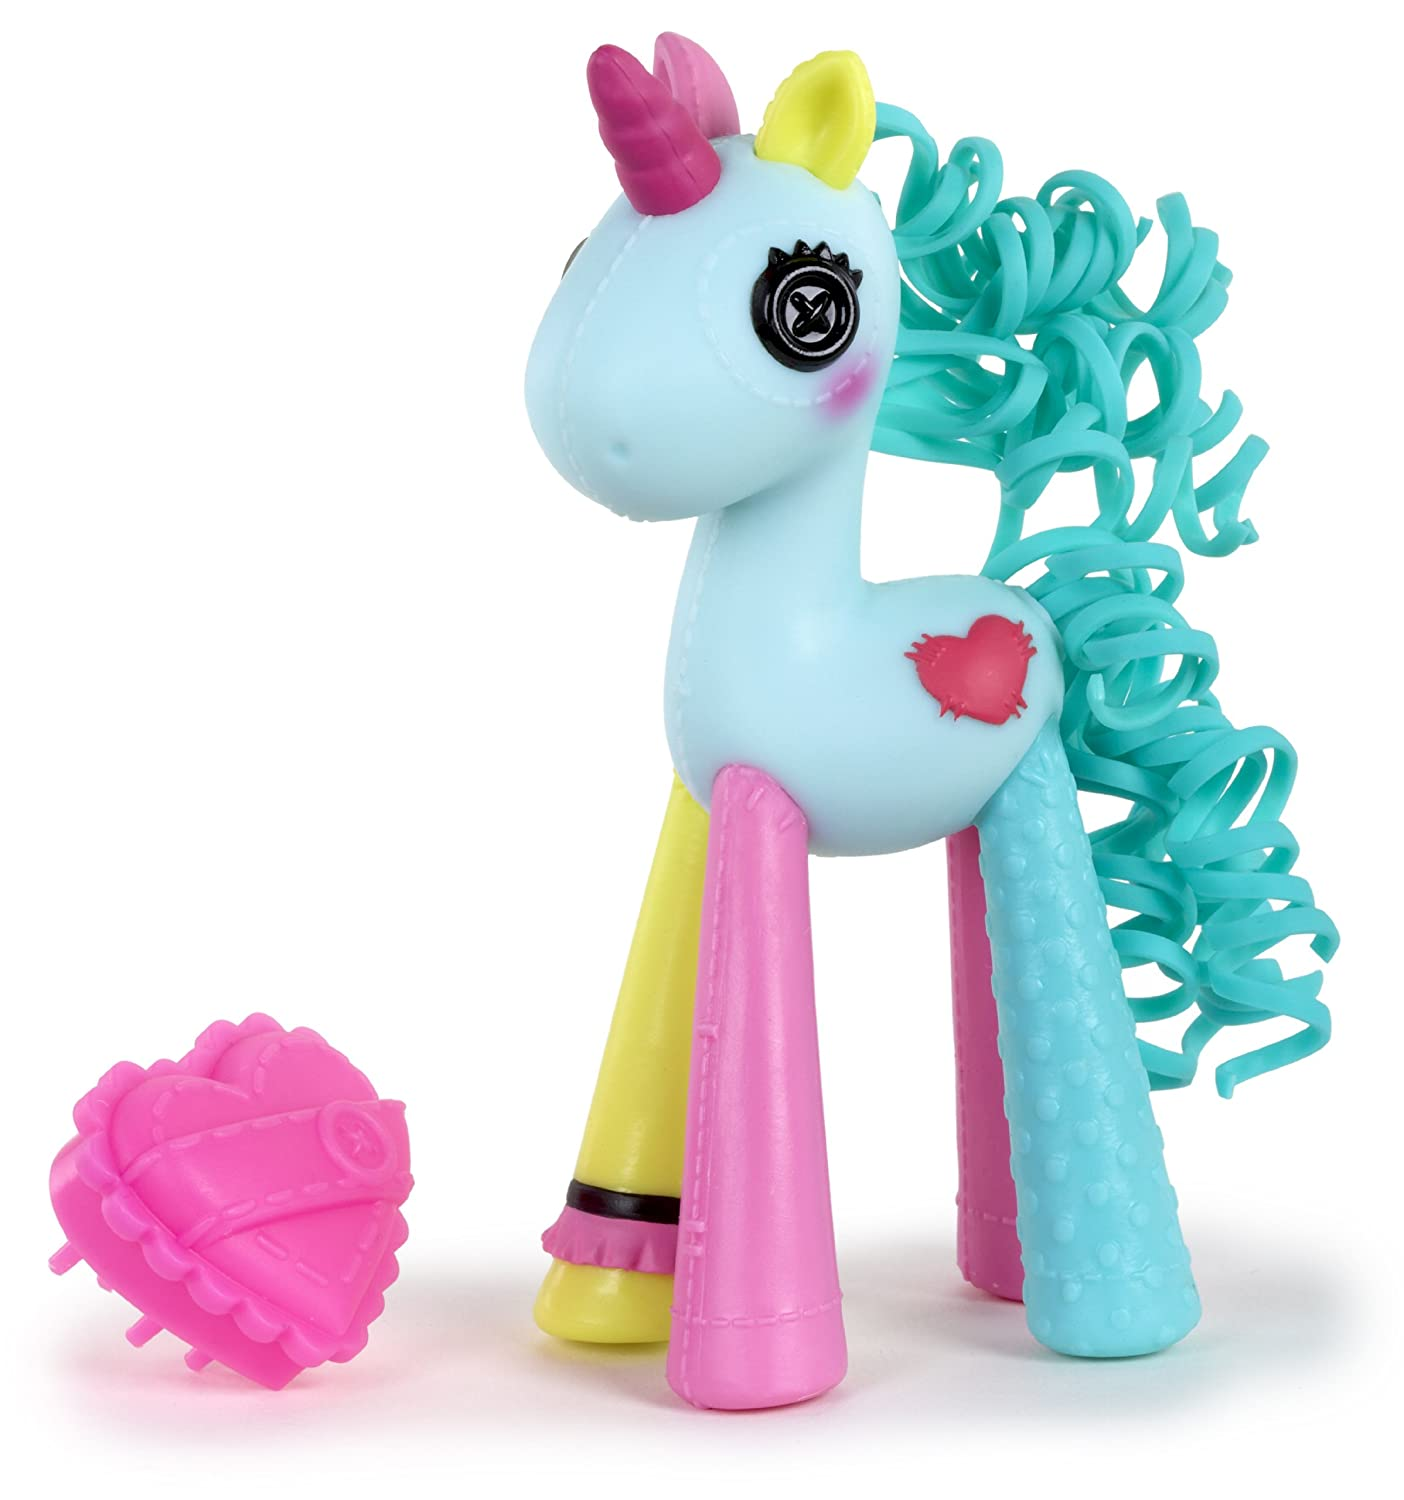 Amazon.com: Lalaloopsy Mini Lala Oopsie Horse, Cashew: Toys & Games